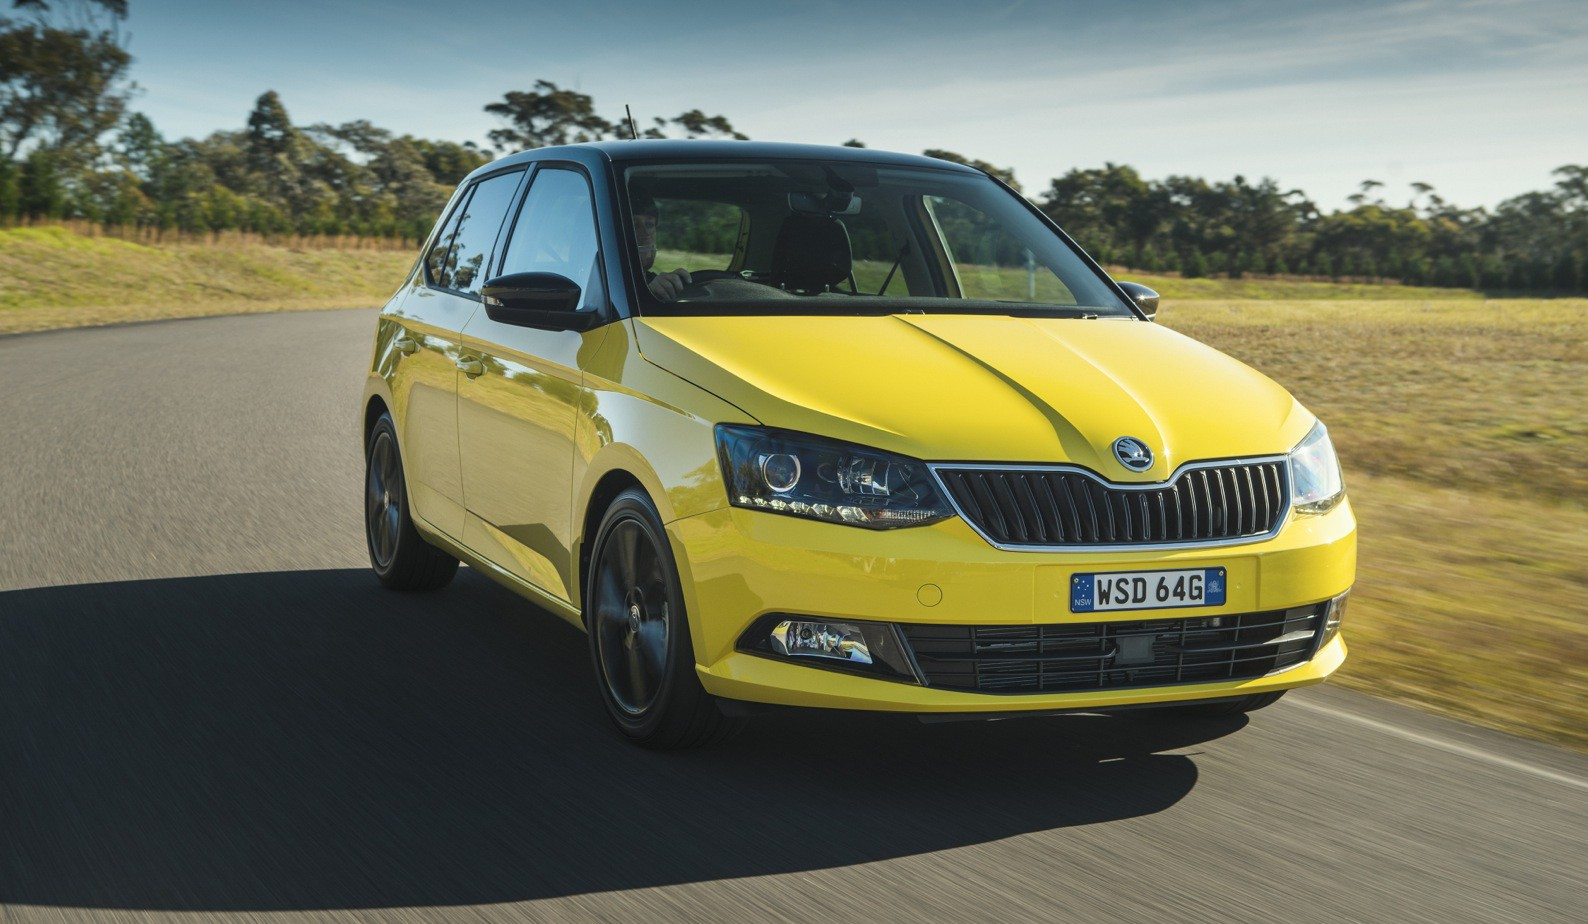 2016 skoda fabia pricing and specifications photos 1 of 14. Black Bedroom Furniture Sets. Home Design Ideas